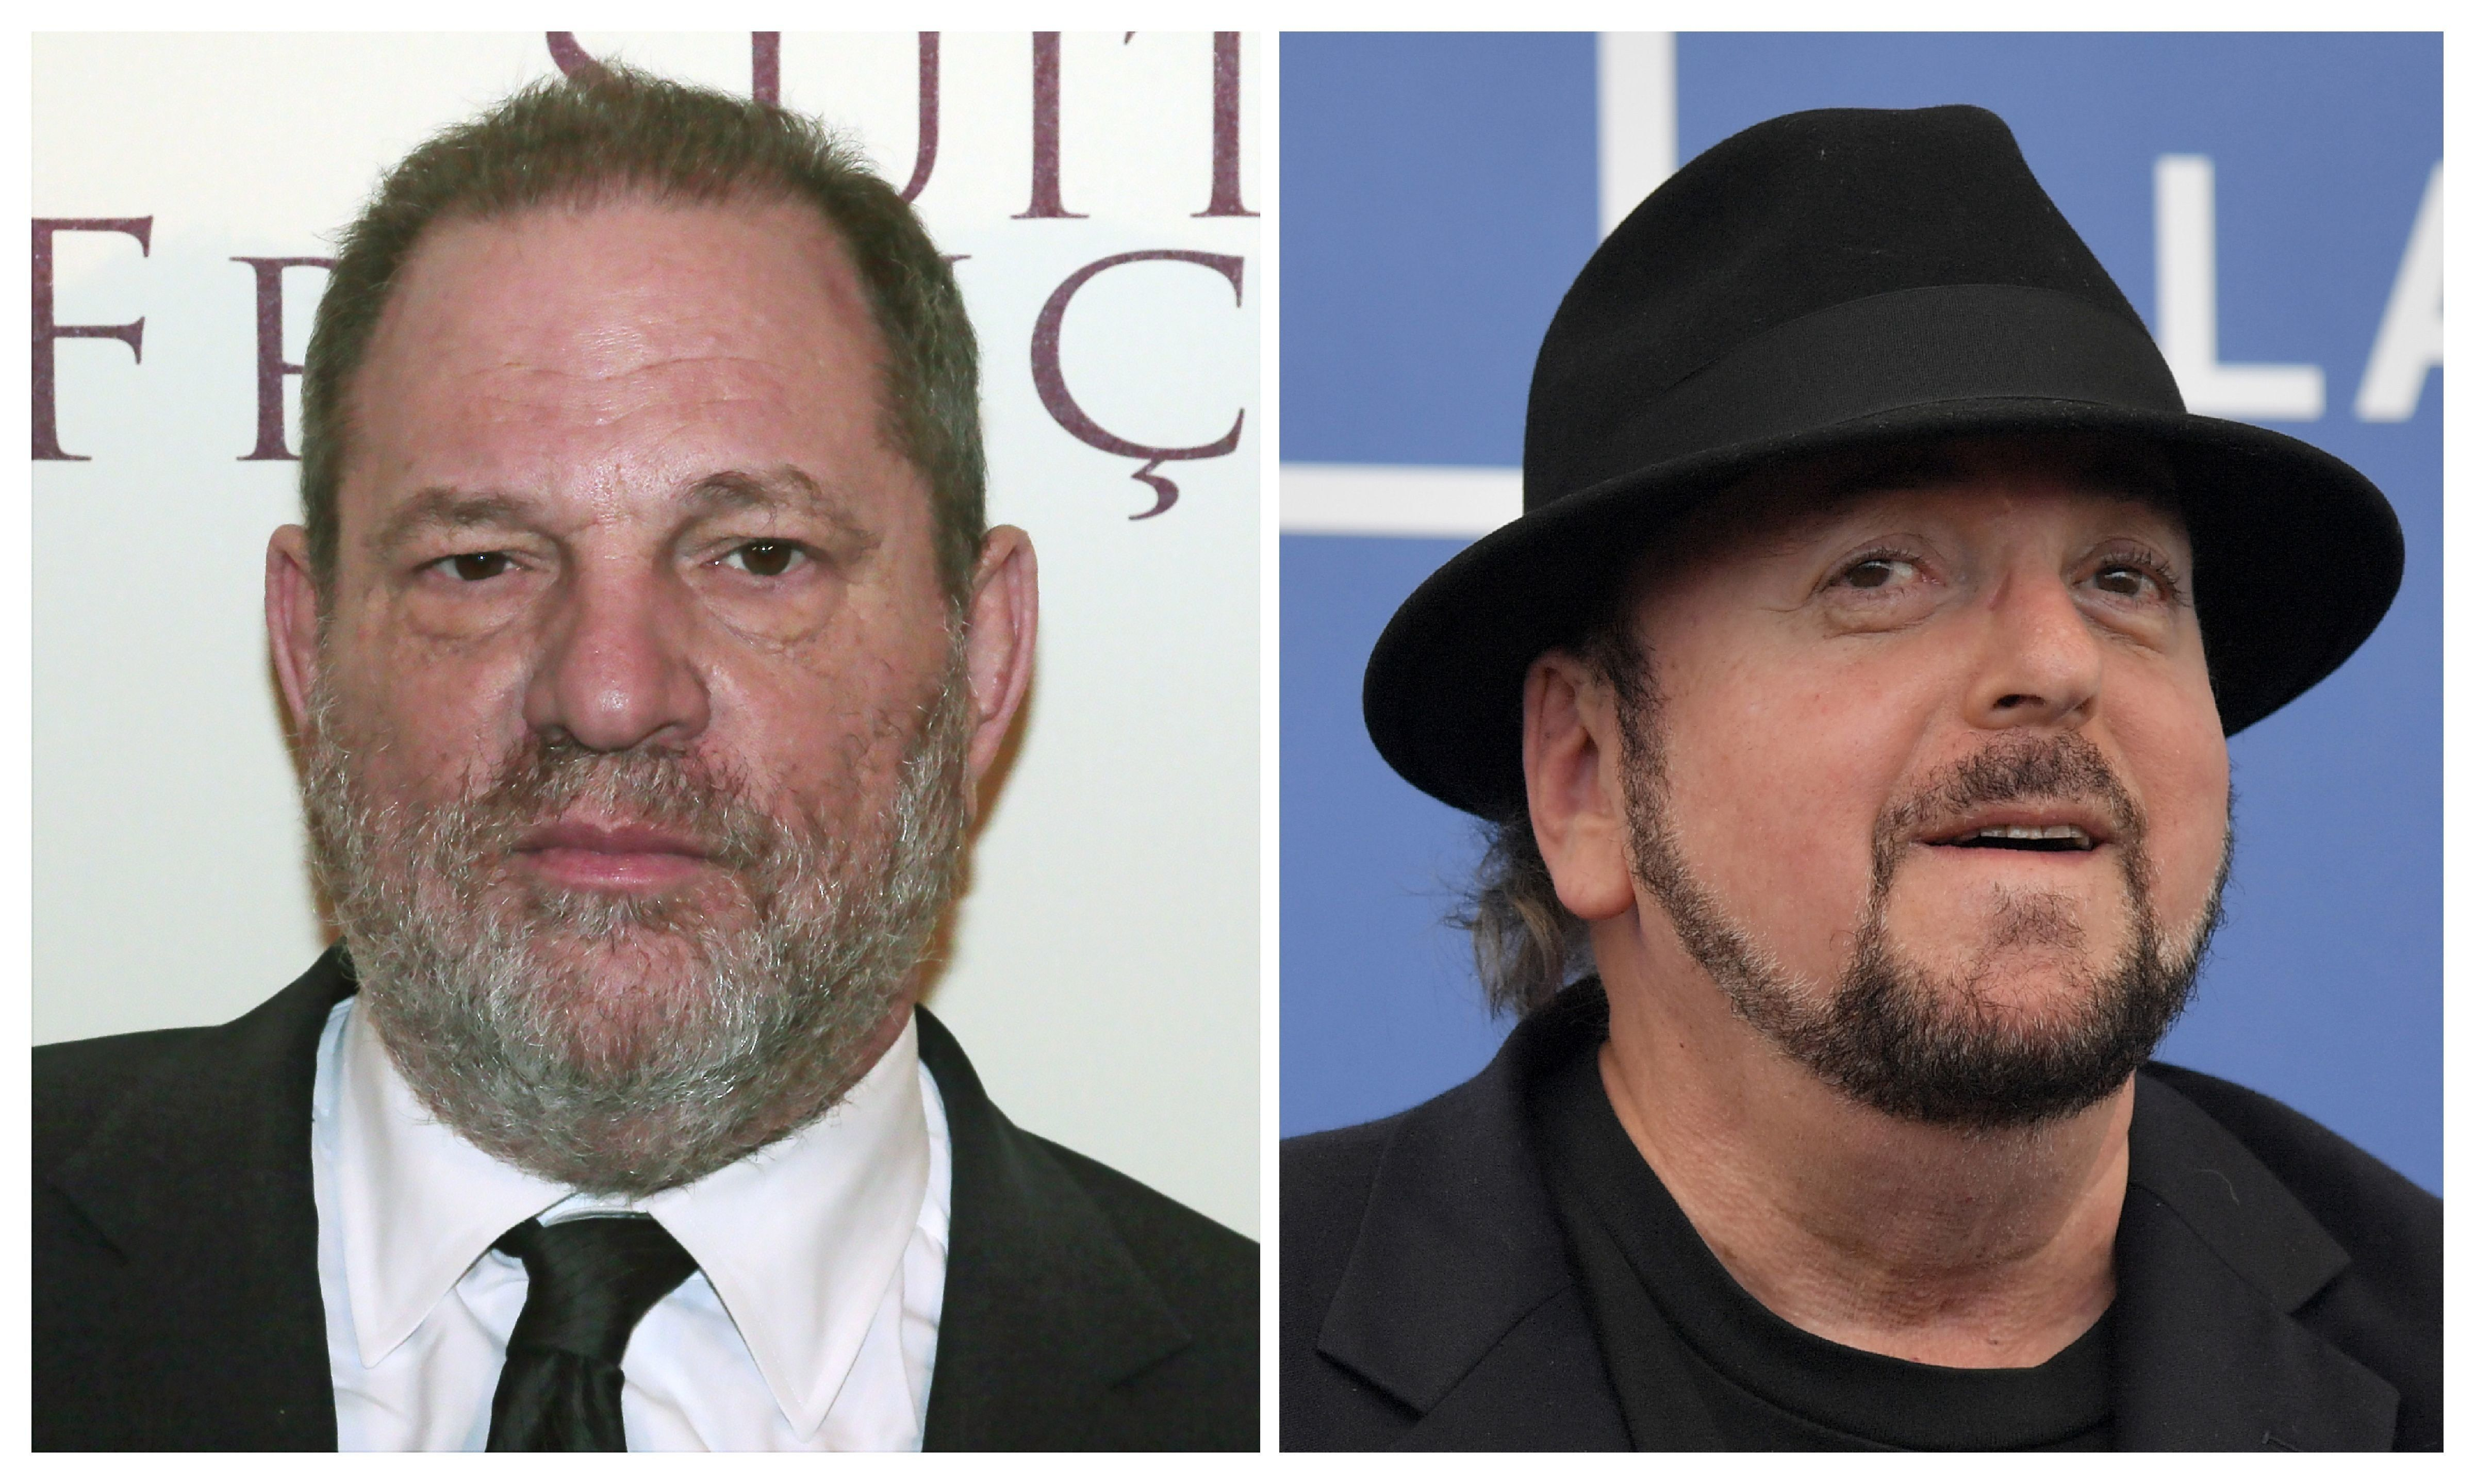 (FILES): These two file photos show producer Harvey Weinstein (L) before the world preview screening of 'French suite' (Suite francaise) on March 10, 2015 in Paris, France; and director James Toback (R) attending the photocall for the movie 'The Private Life of a Modern Woman' during the 74th Venice Film Festival on September 3, 2017 at Venice Lido in Italy.   The Beverly Hills Police Department said Tuesday, october 31, 2017 it is investigating 'multiple complaints' of assaults by disgraced producer Harvey Weinstein and director James Toback, who face numerous allegations of unwanted sexual encounters. Accounts of abuse by Weinstein that were published last month in The New York Times and The New Yorker encouraged others to speak out, unleashing a cascade of allegations of sexual harassment and assault against leading figures in Hollywood and elsewhere. The police department did not provide details about the complaints in a statement titled 'Recently Reported Assaults,' and said that no additional information would be released at this time.  / AFP PHOTO / dsk        (Photo credit should read DSK/AFP/Getty Images)